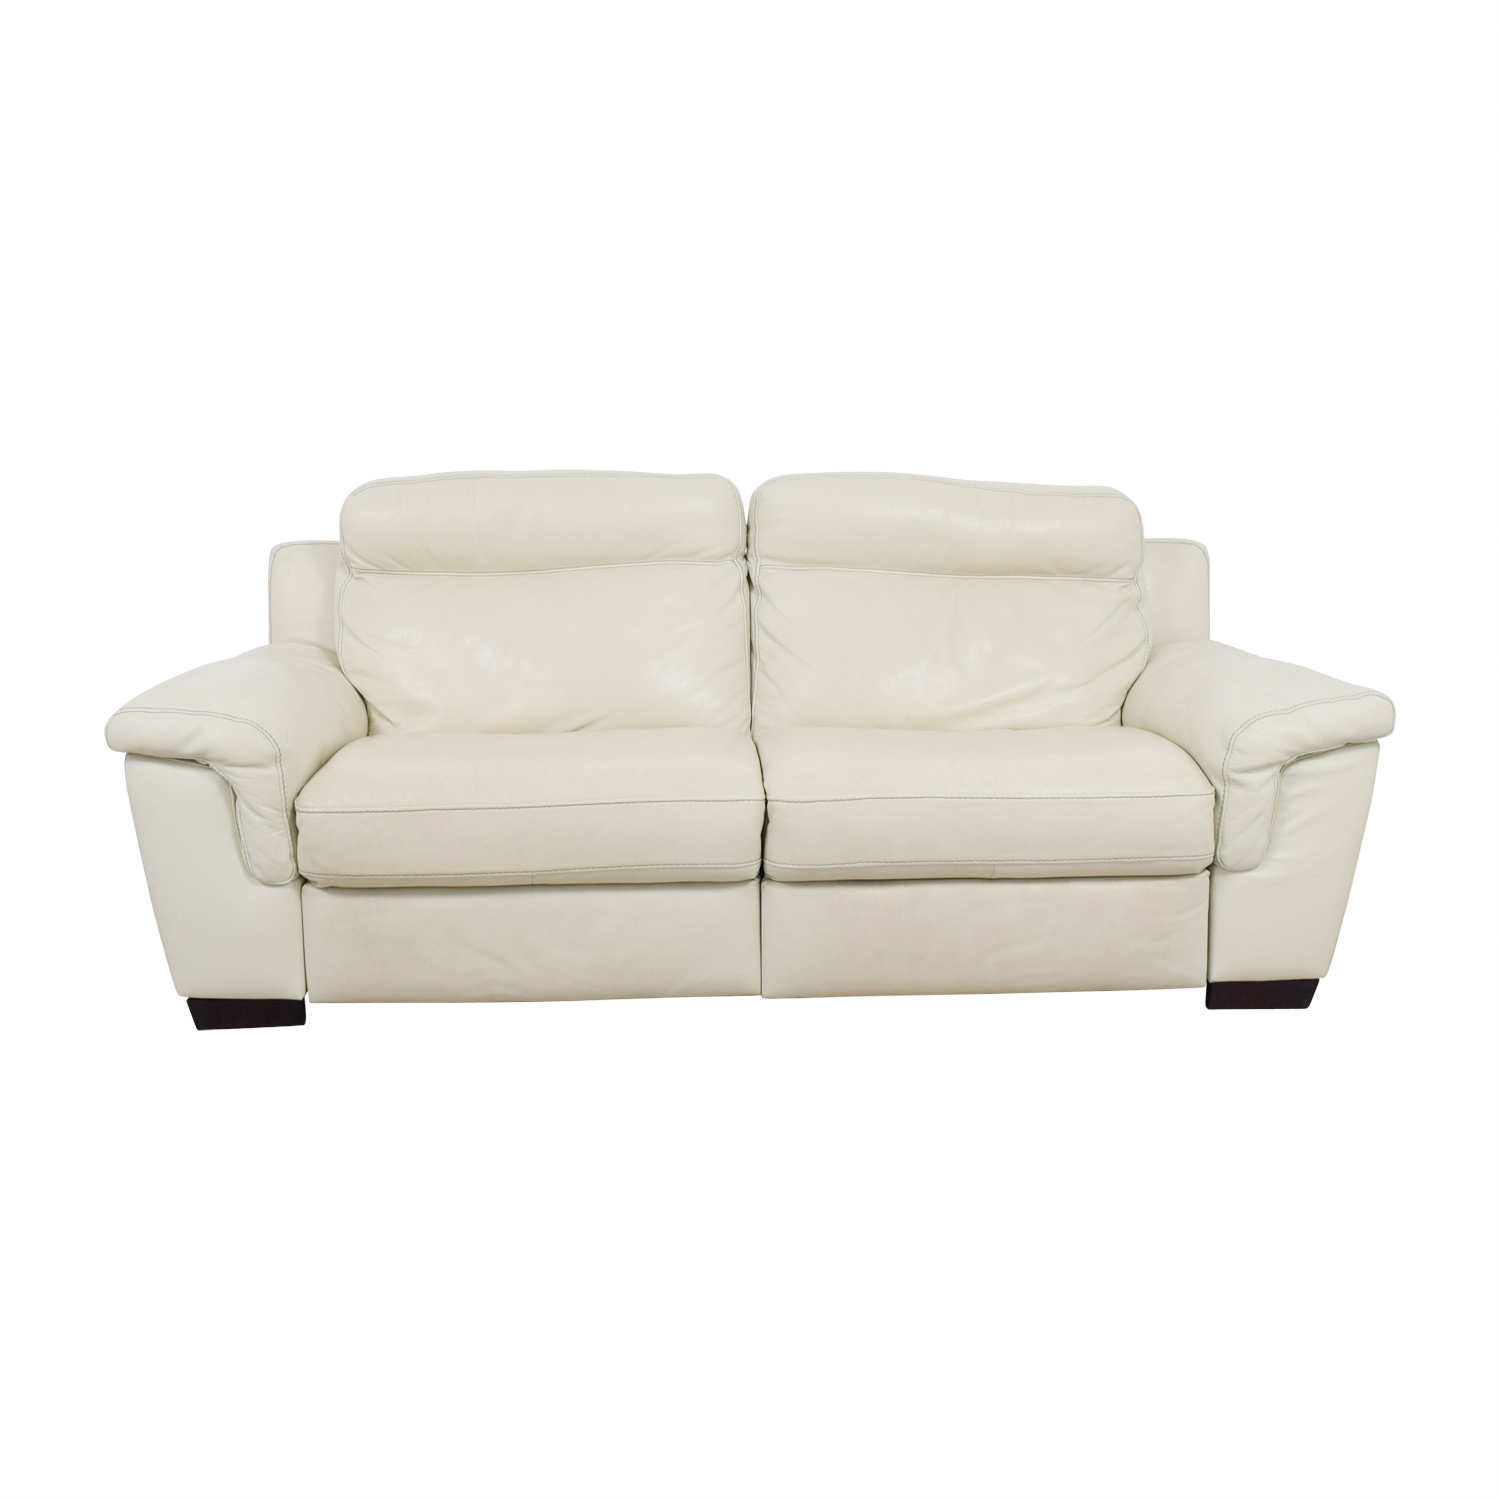 Macy S Off White Leather Recliner Sofa